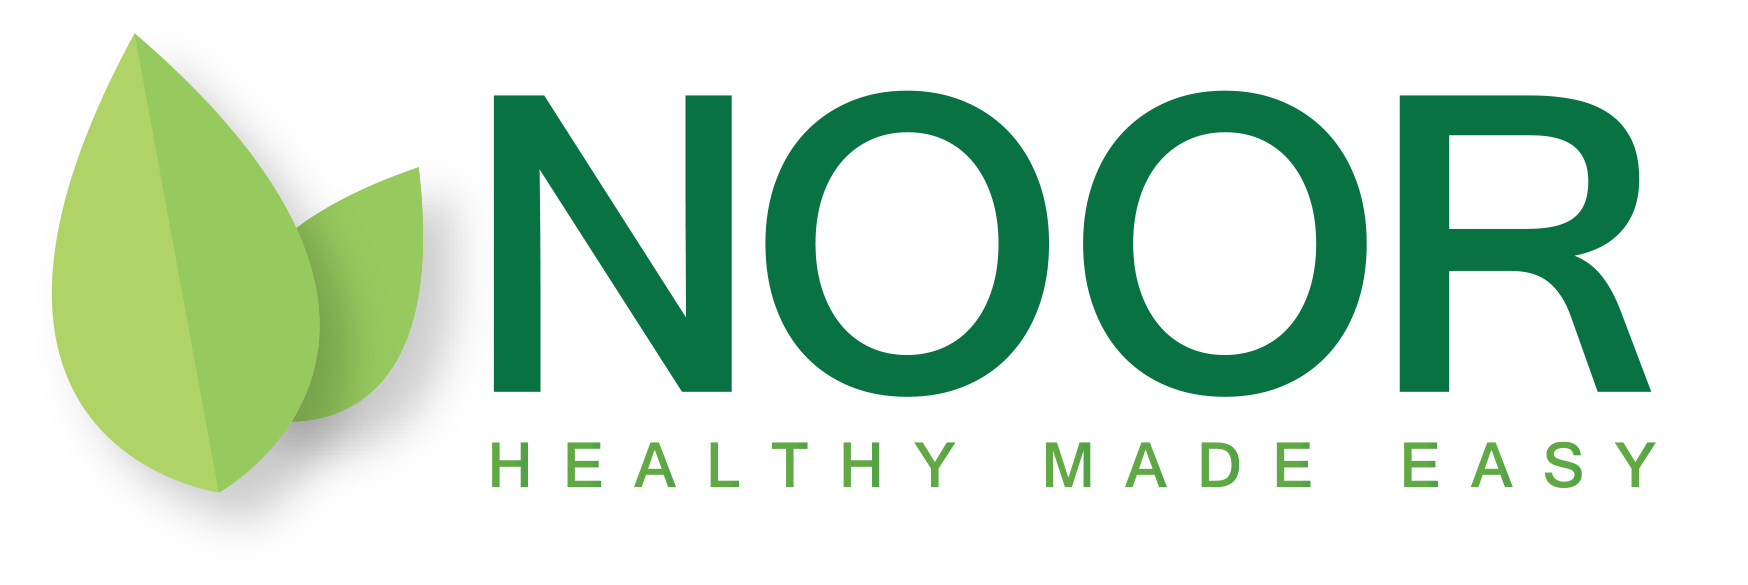 Noor Healthy logo